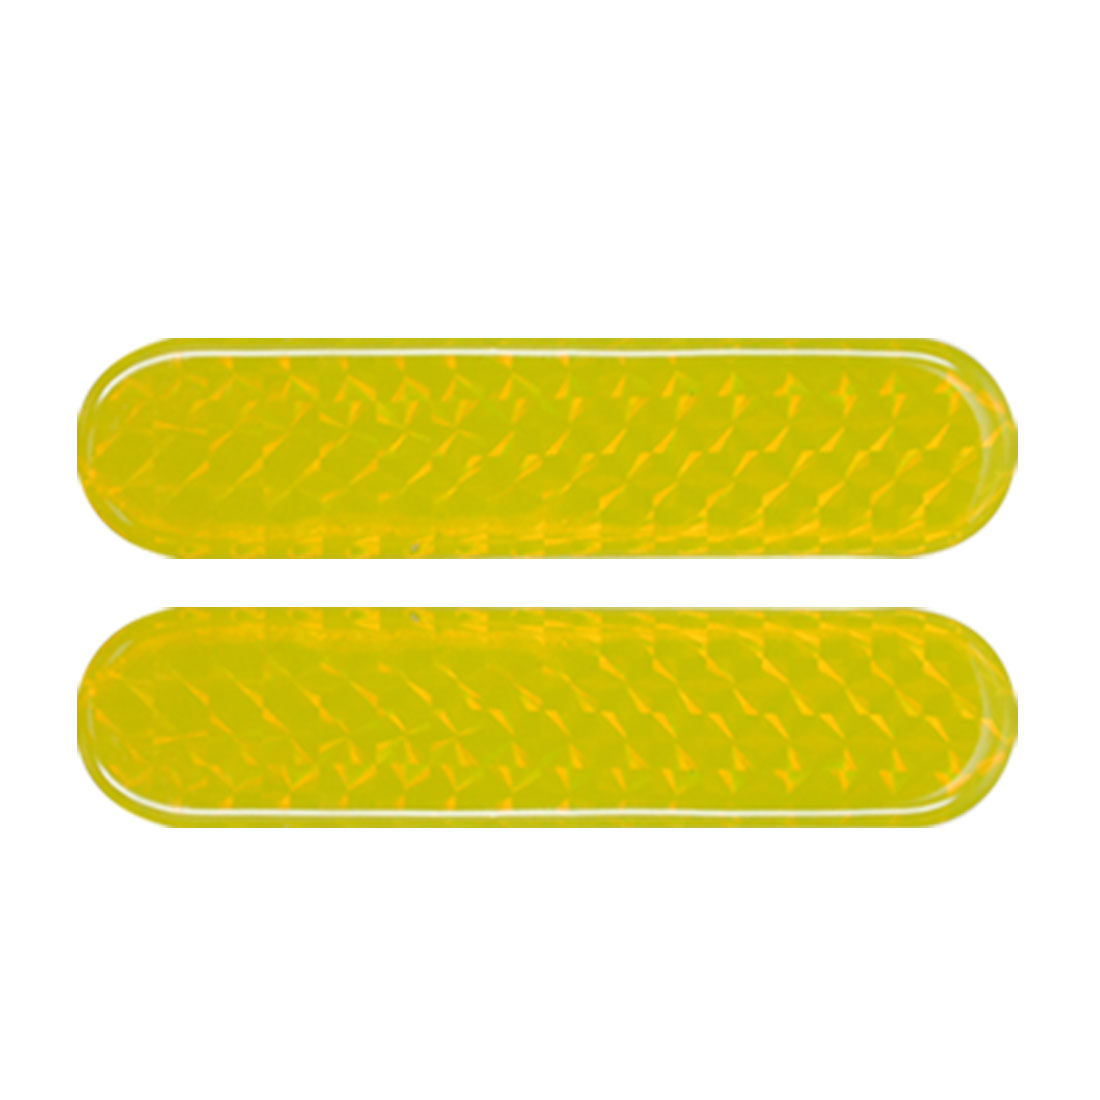 2 PCS Car Auto Safety Light Reflectors Yellow Stickers